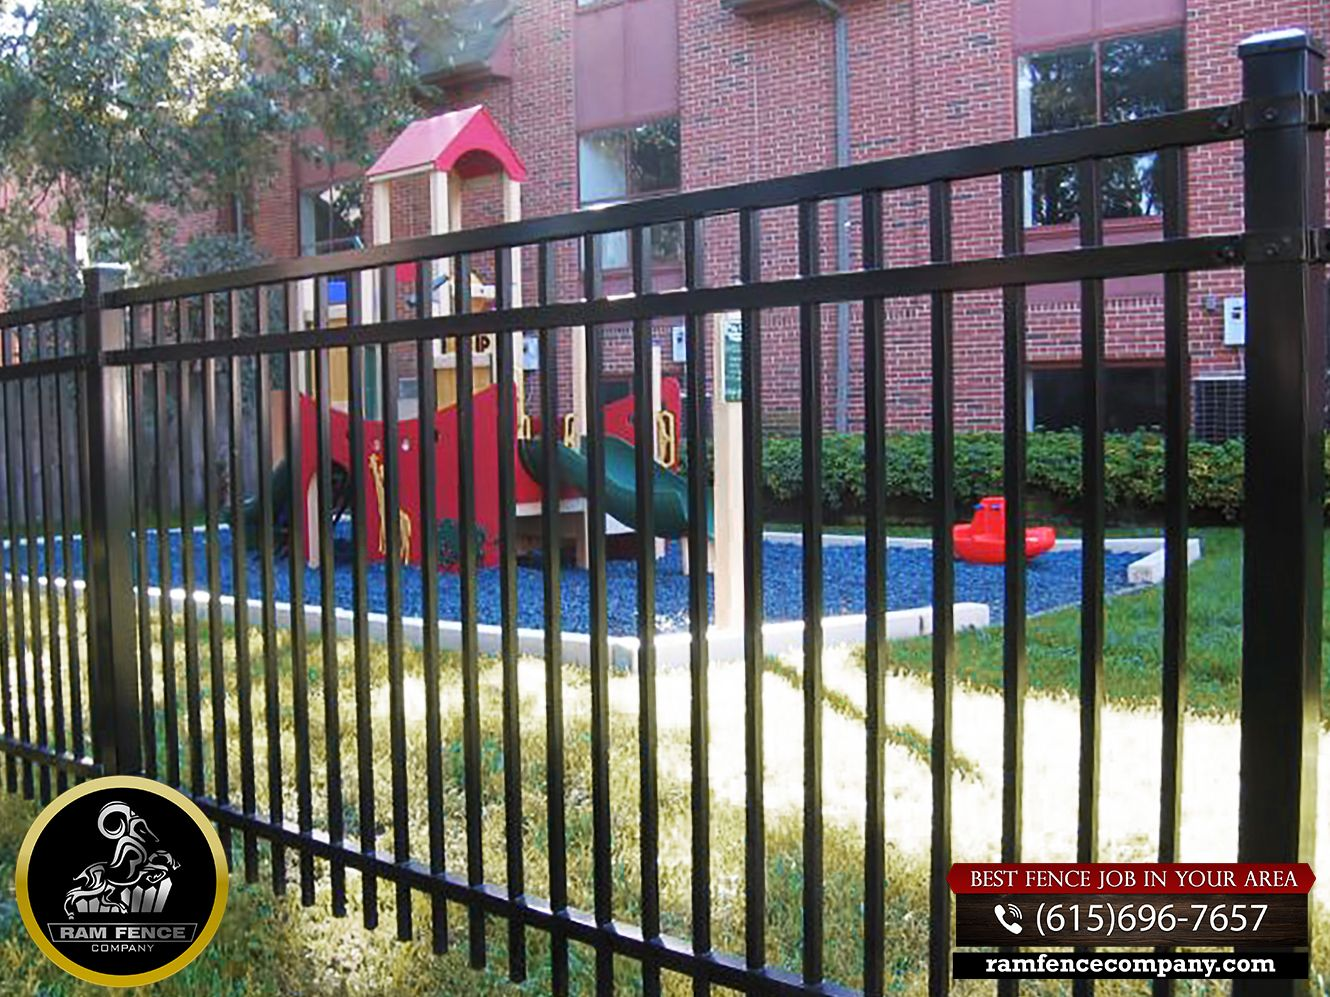 We Make Professional Installations Of Wood Fencing Vinyl Fencing